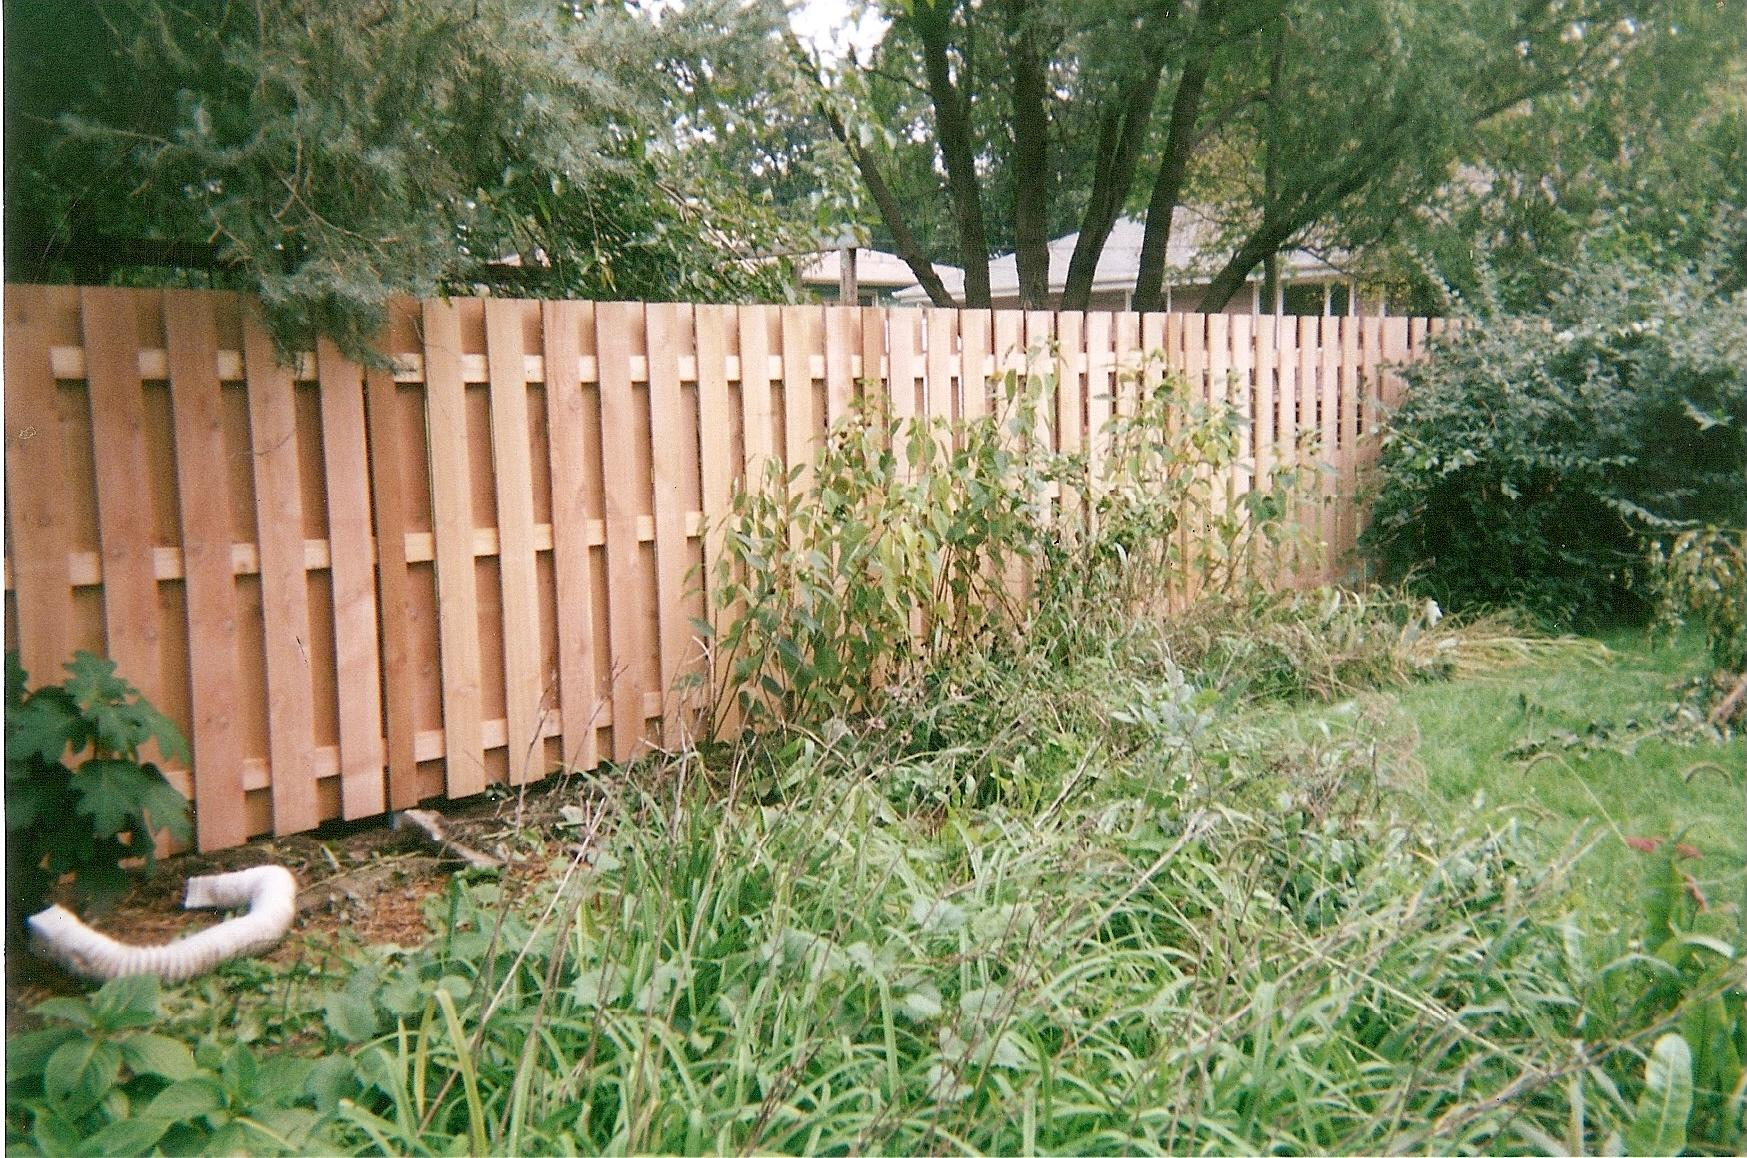 Amazing photo of   Install Metal T Post Fencing for Pinterest with #8D633E color and 1747x1158 pixels